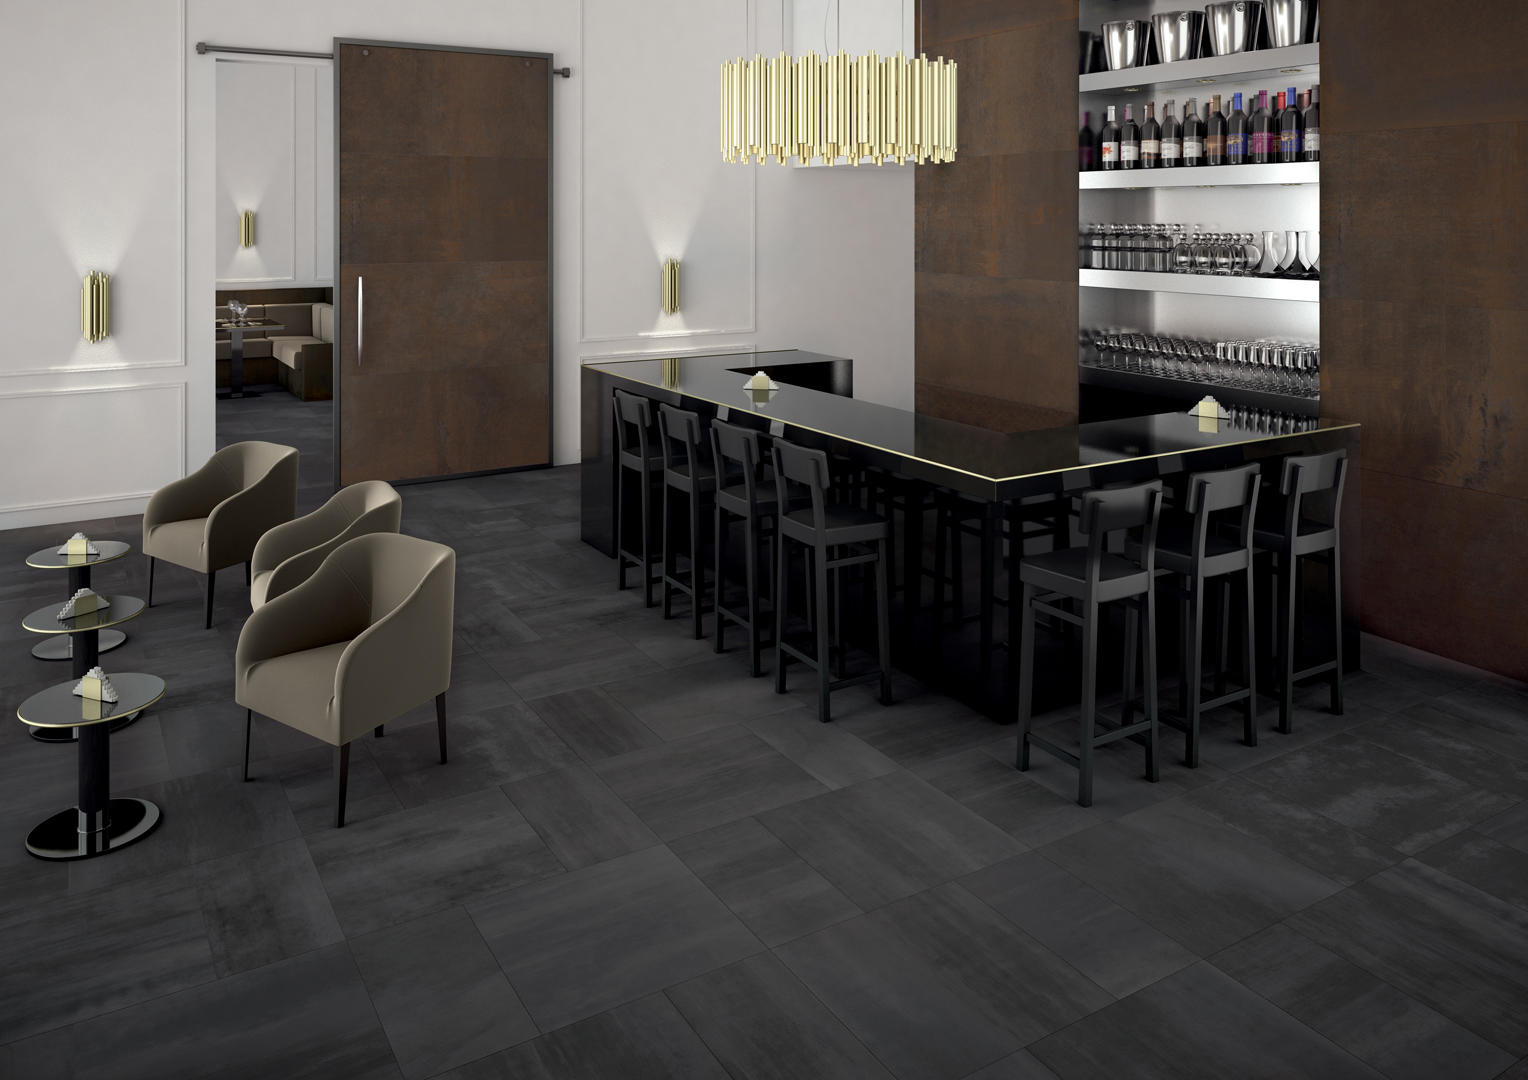 Dark tile floor image collections tile flooring design ideas tile floors dailygadgetfo Choice Image